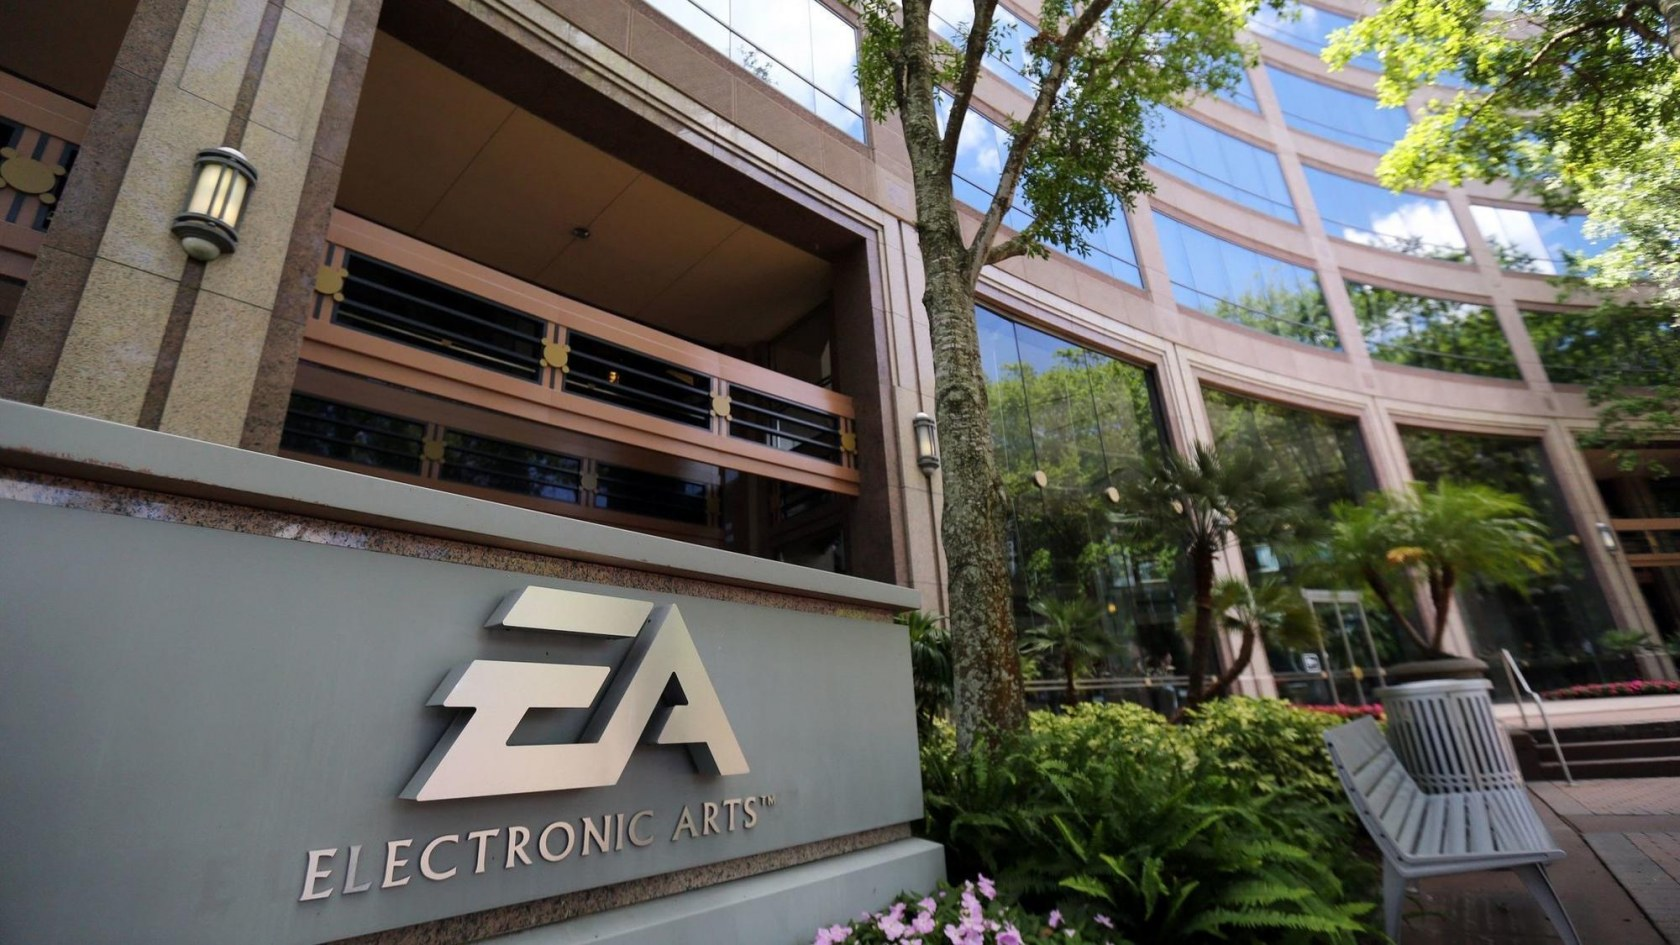 EA lays off 350 employees to 'refine' itself and 'meet the needs' of players